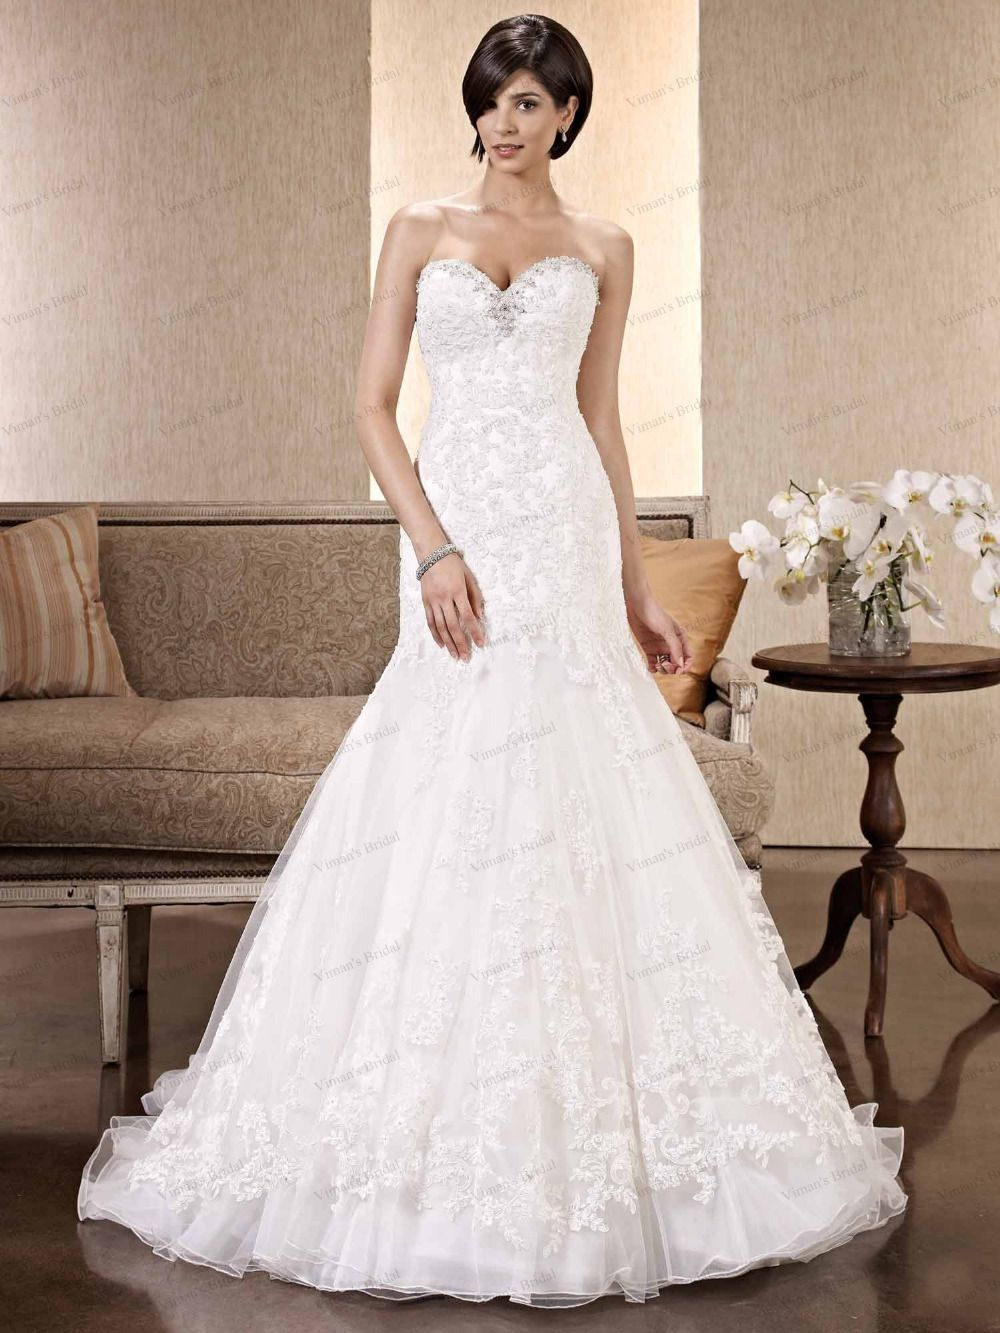 Wedding dress with bow on back  Click to Buy ucuc Vimanus Bridal  Wedding Dress Lace up Back